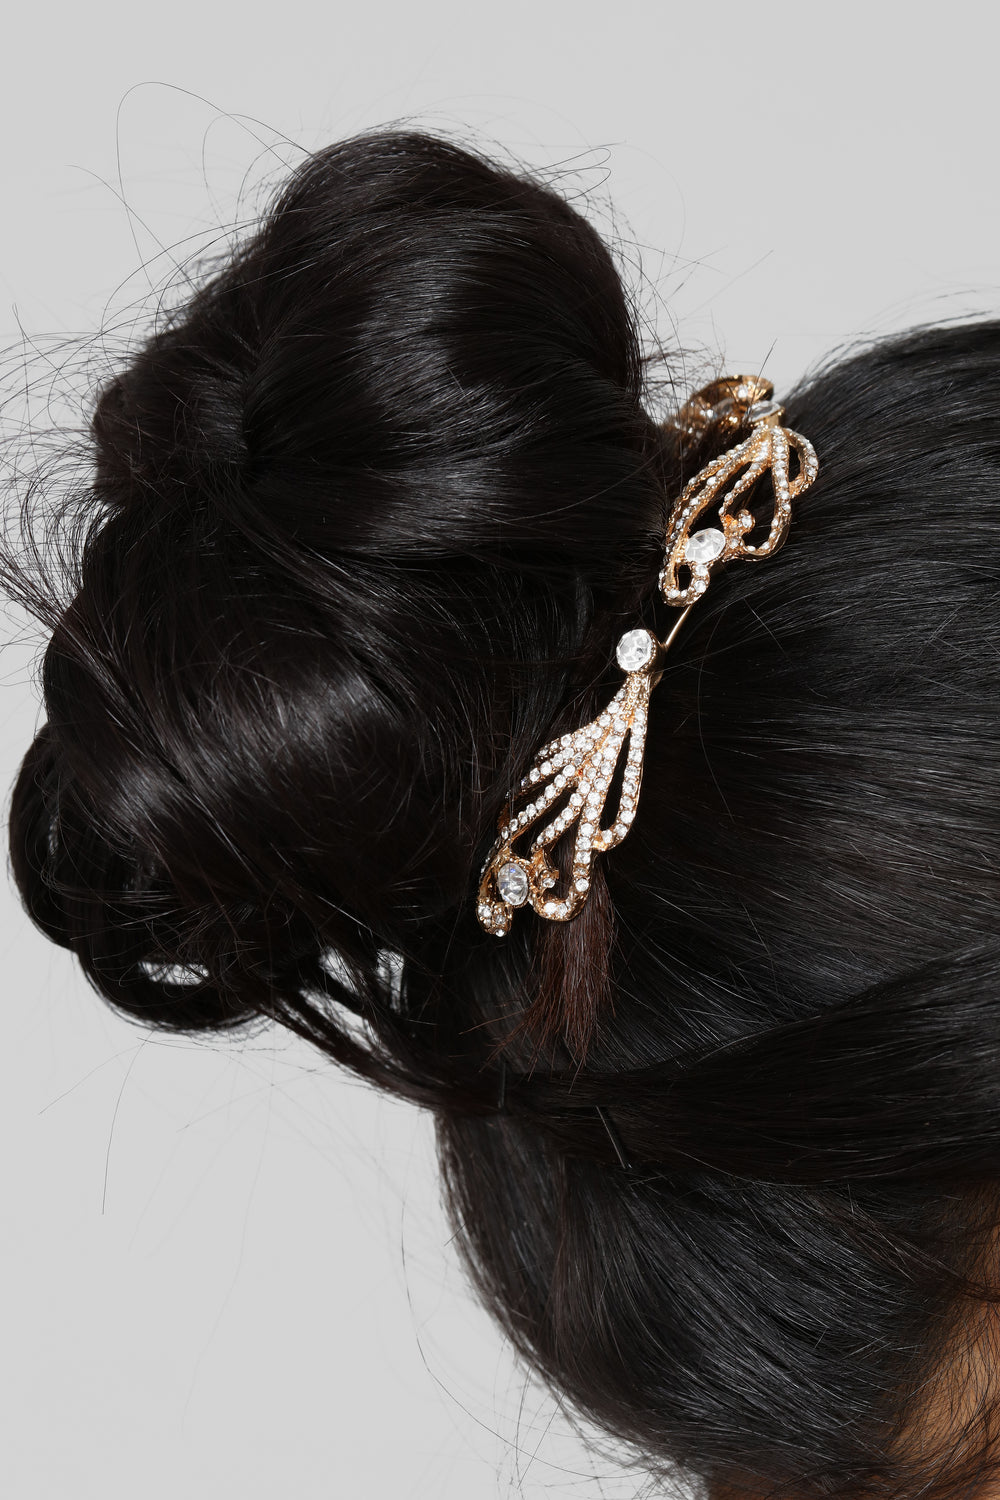 Hot Buns Hair Pin - Gold